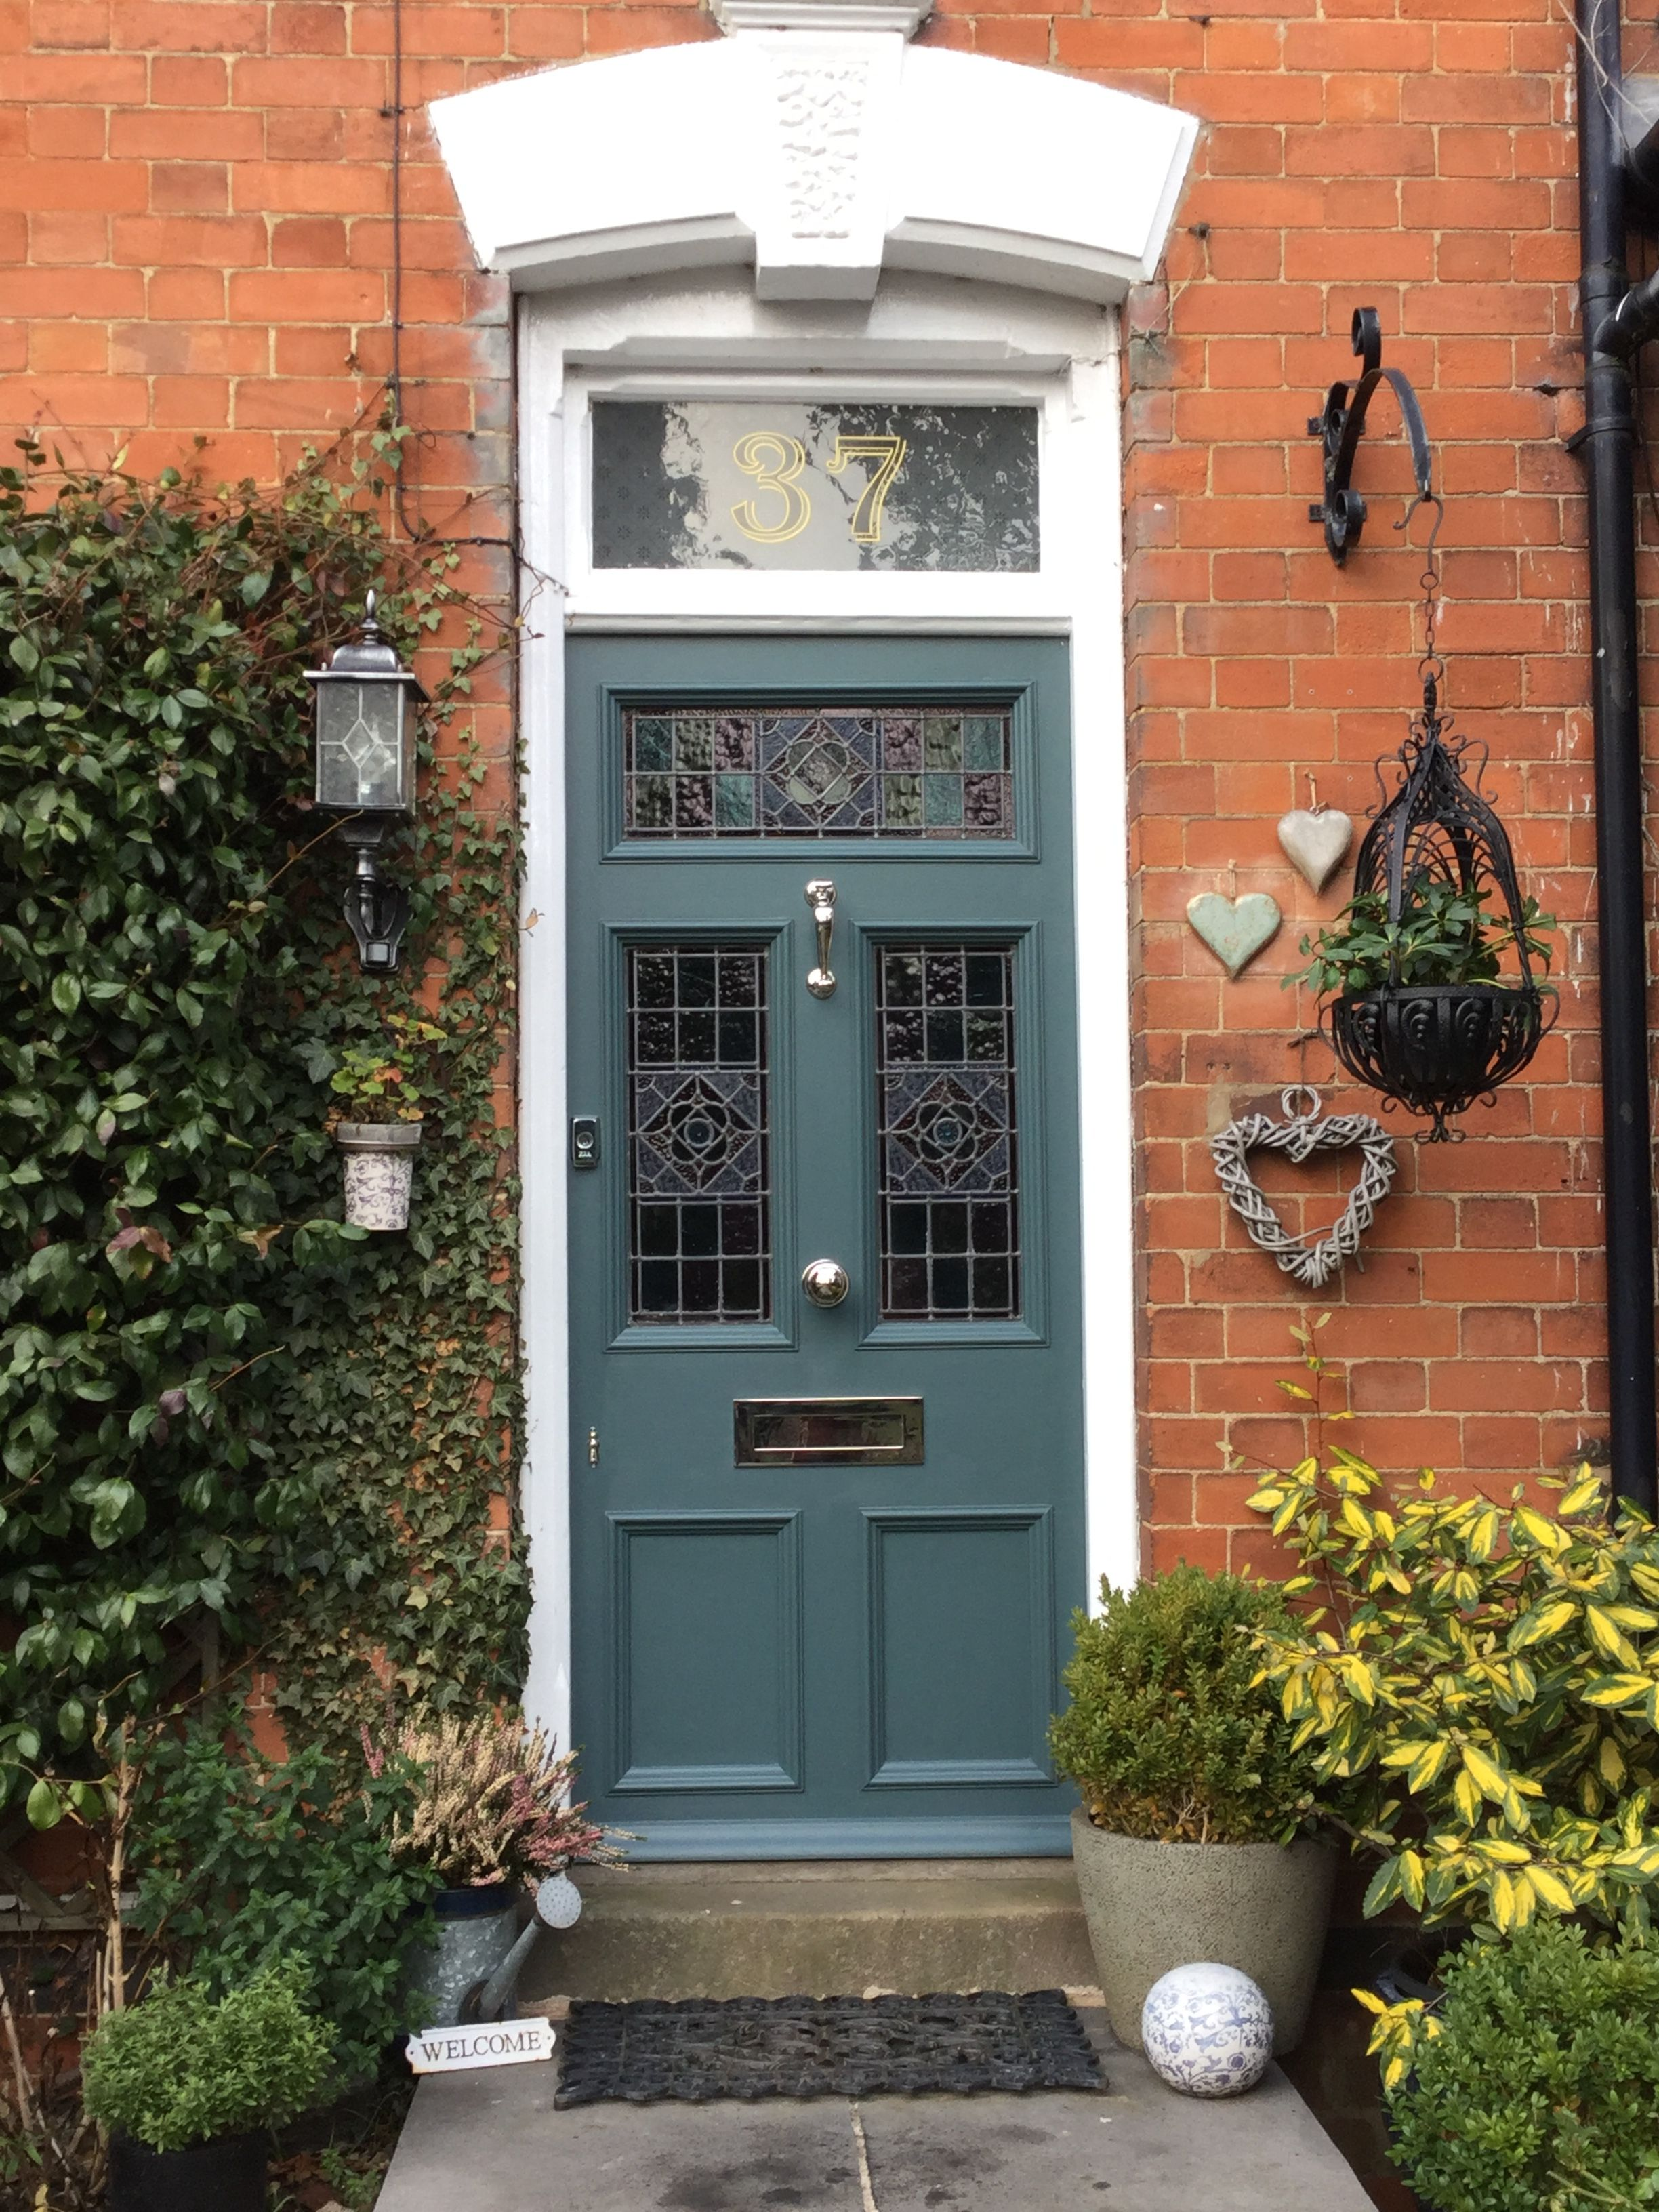 Farrow And Ball Inchyra Blue On Our Beautiful Front Door   This Is My Dream  Door